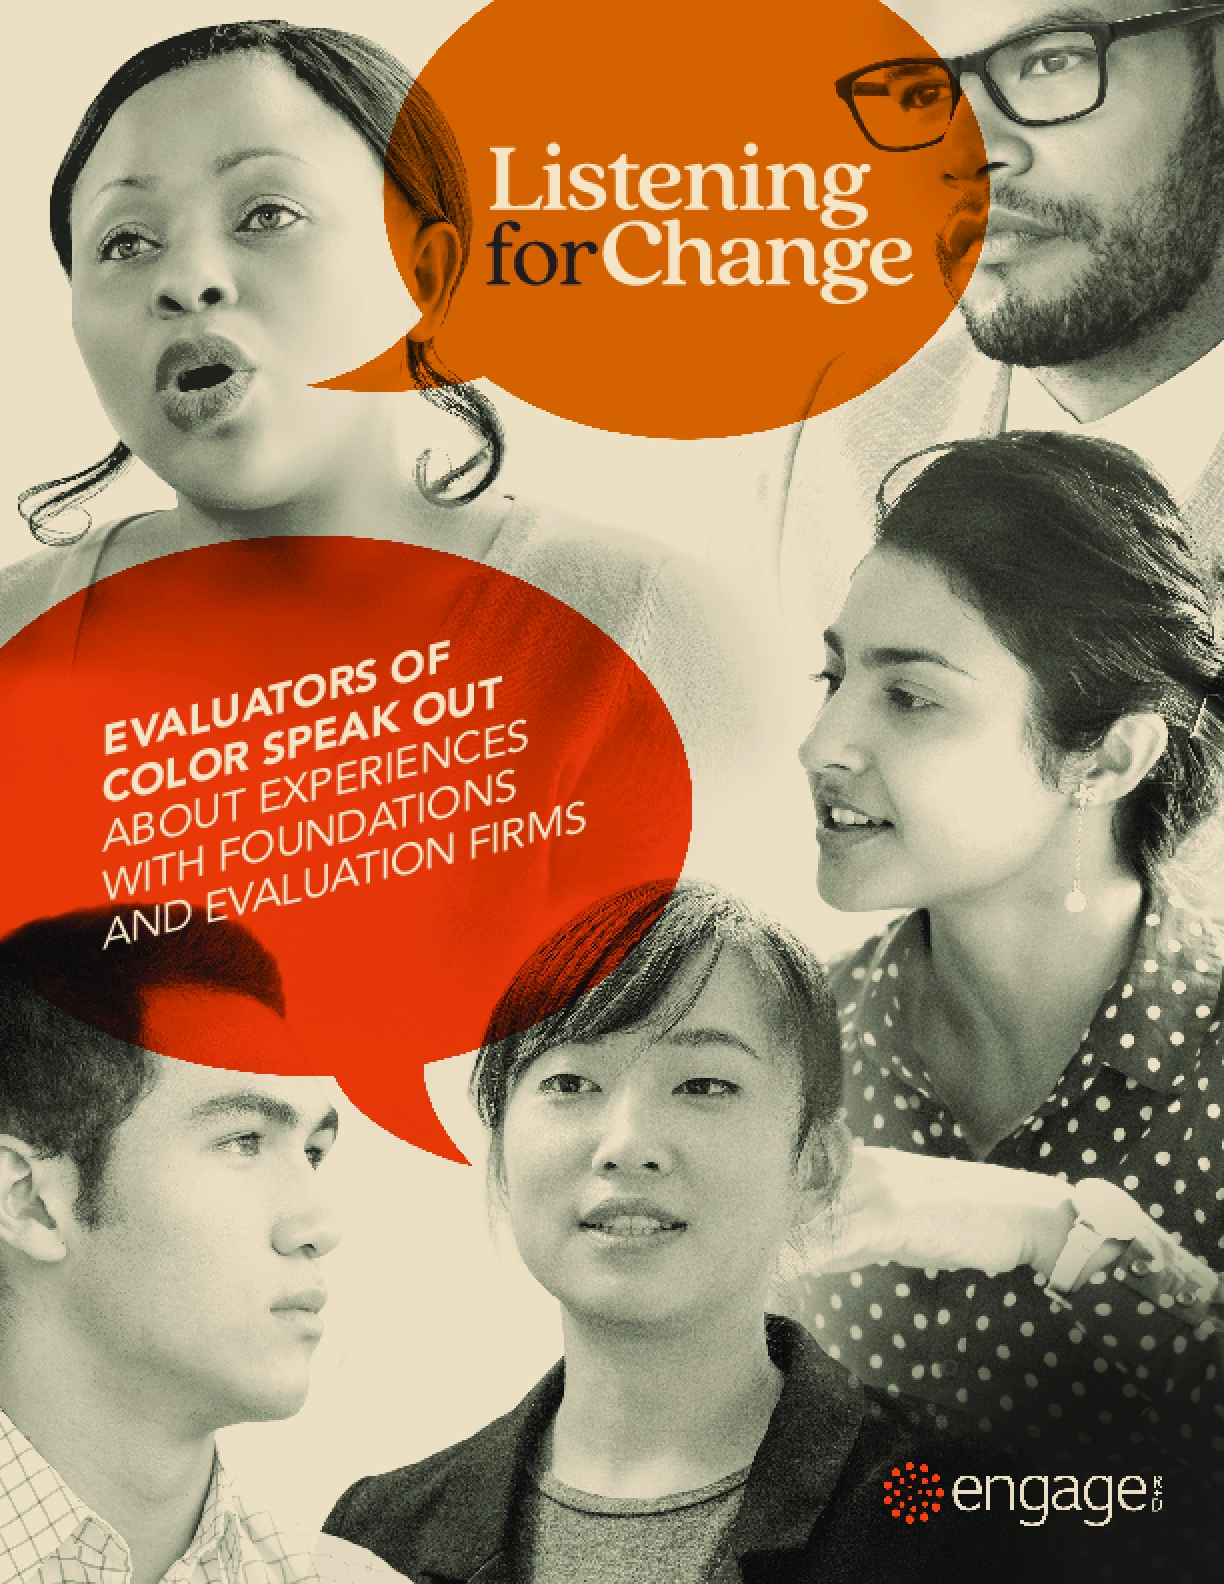 Listening for Change: Evaluators of color speak out about experiences with foundations and evaluation firms